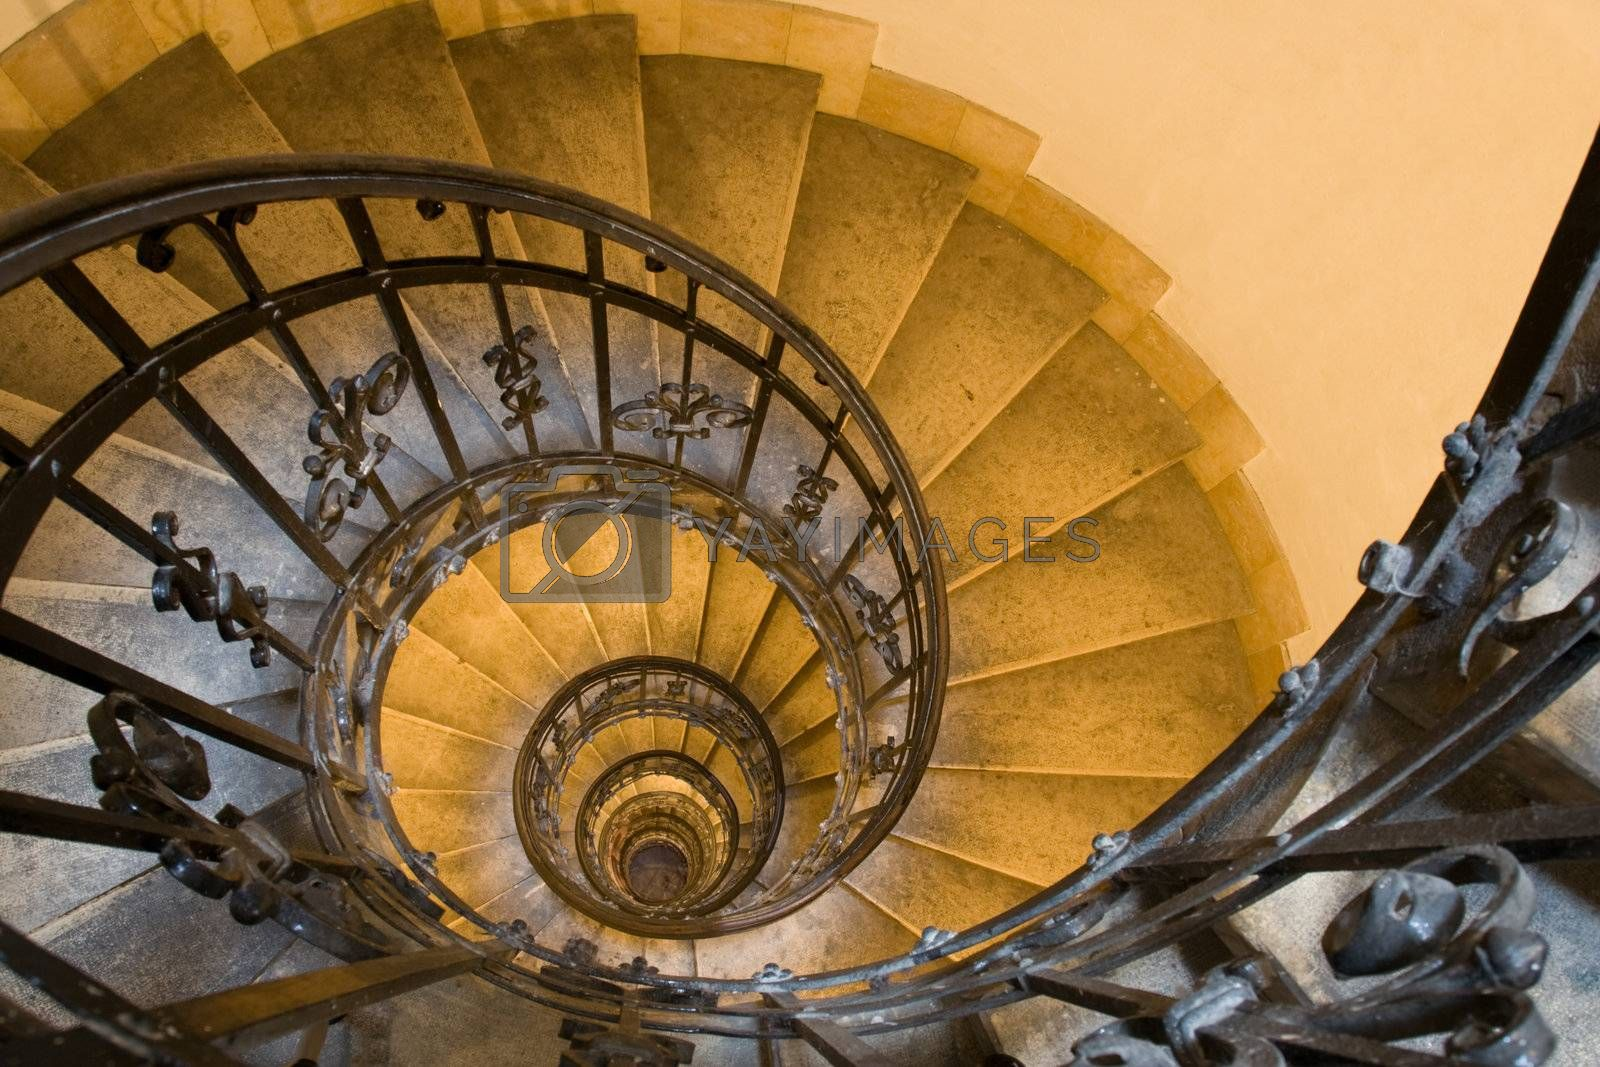 Spiral staircase, forged handhold and stone steps in old tower